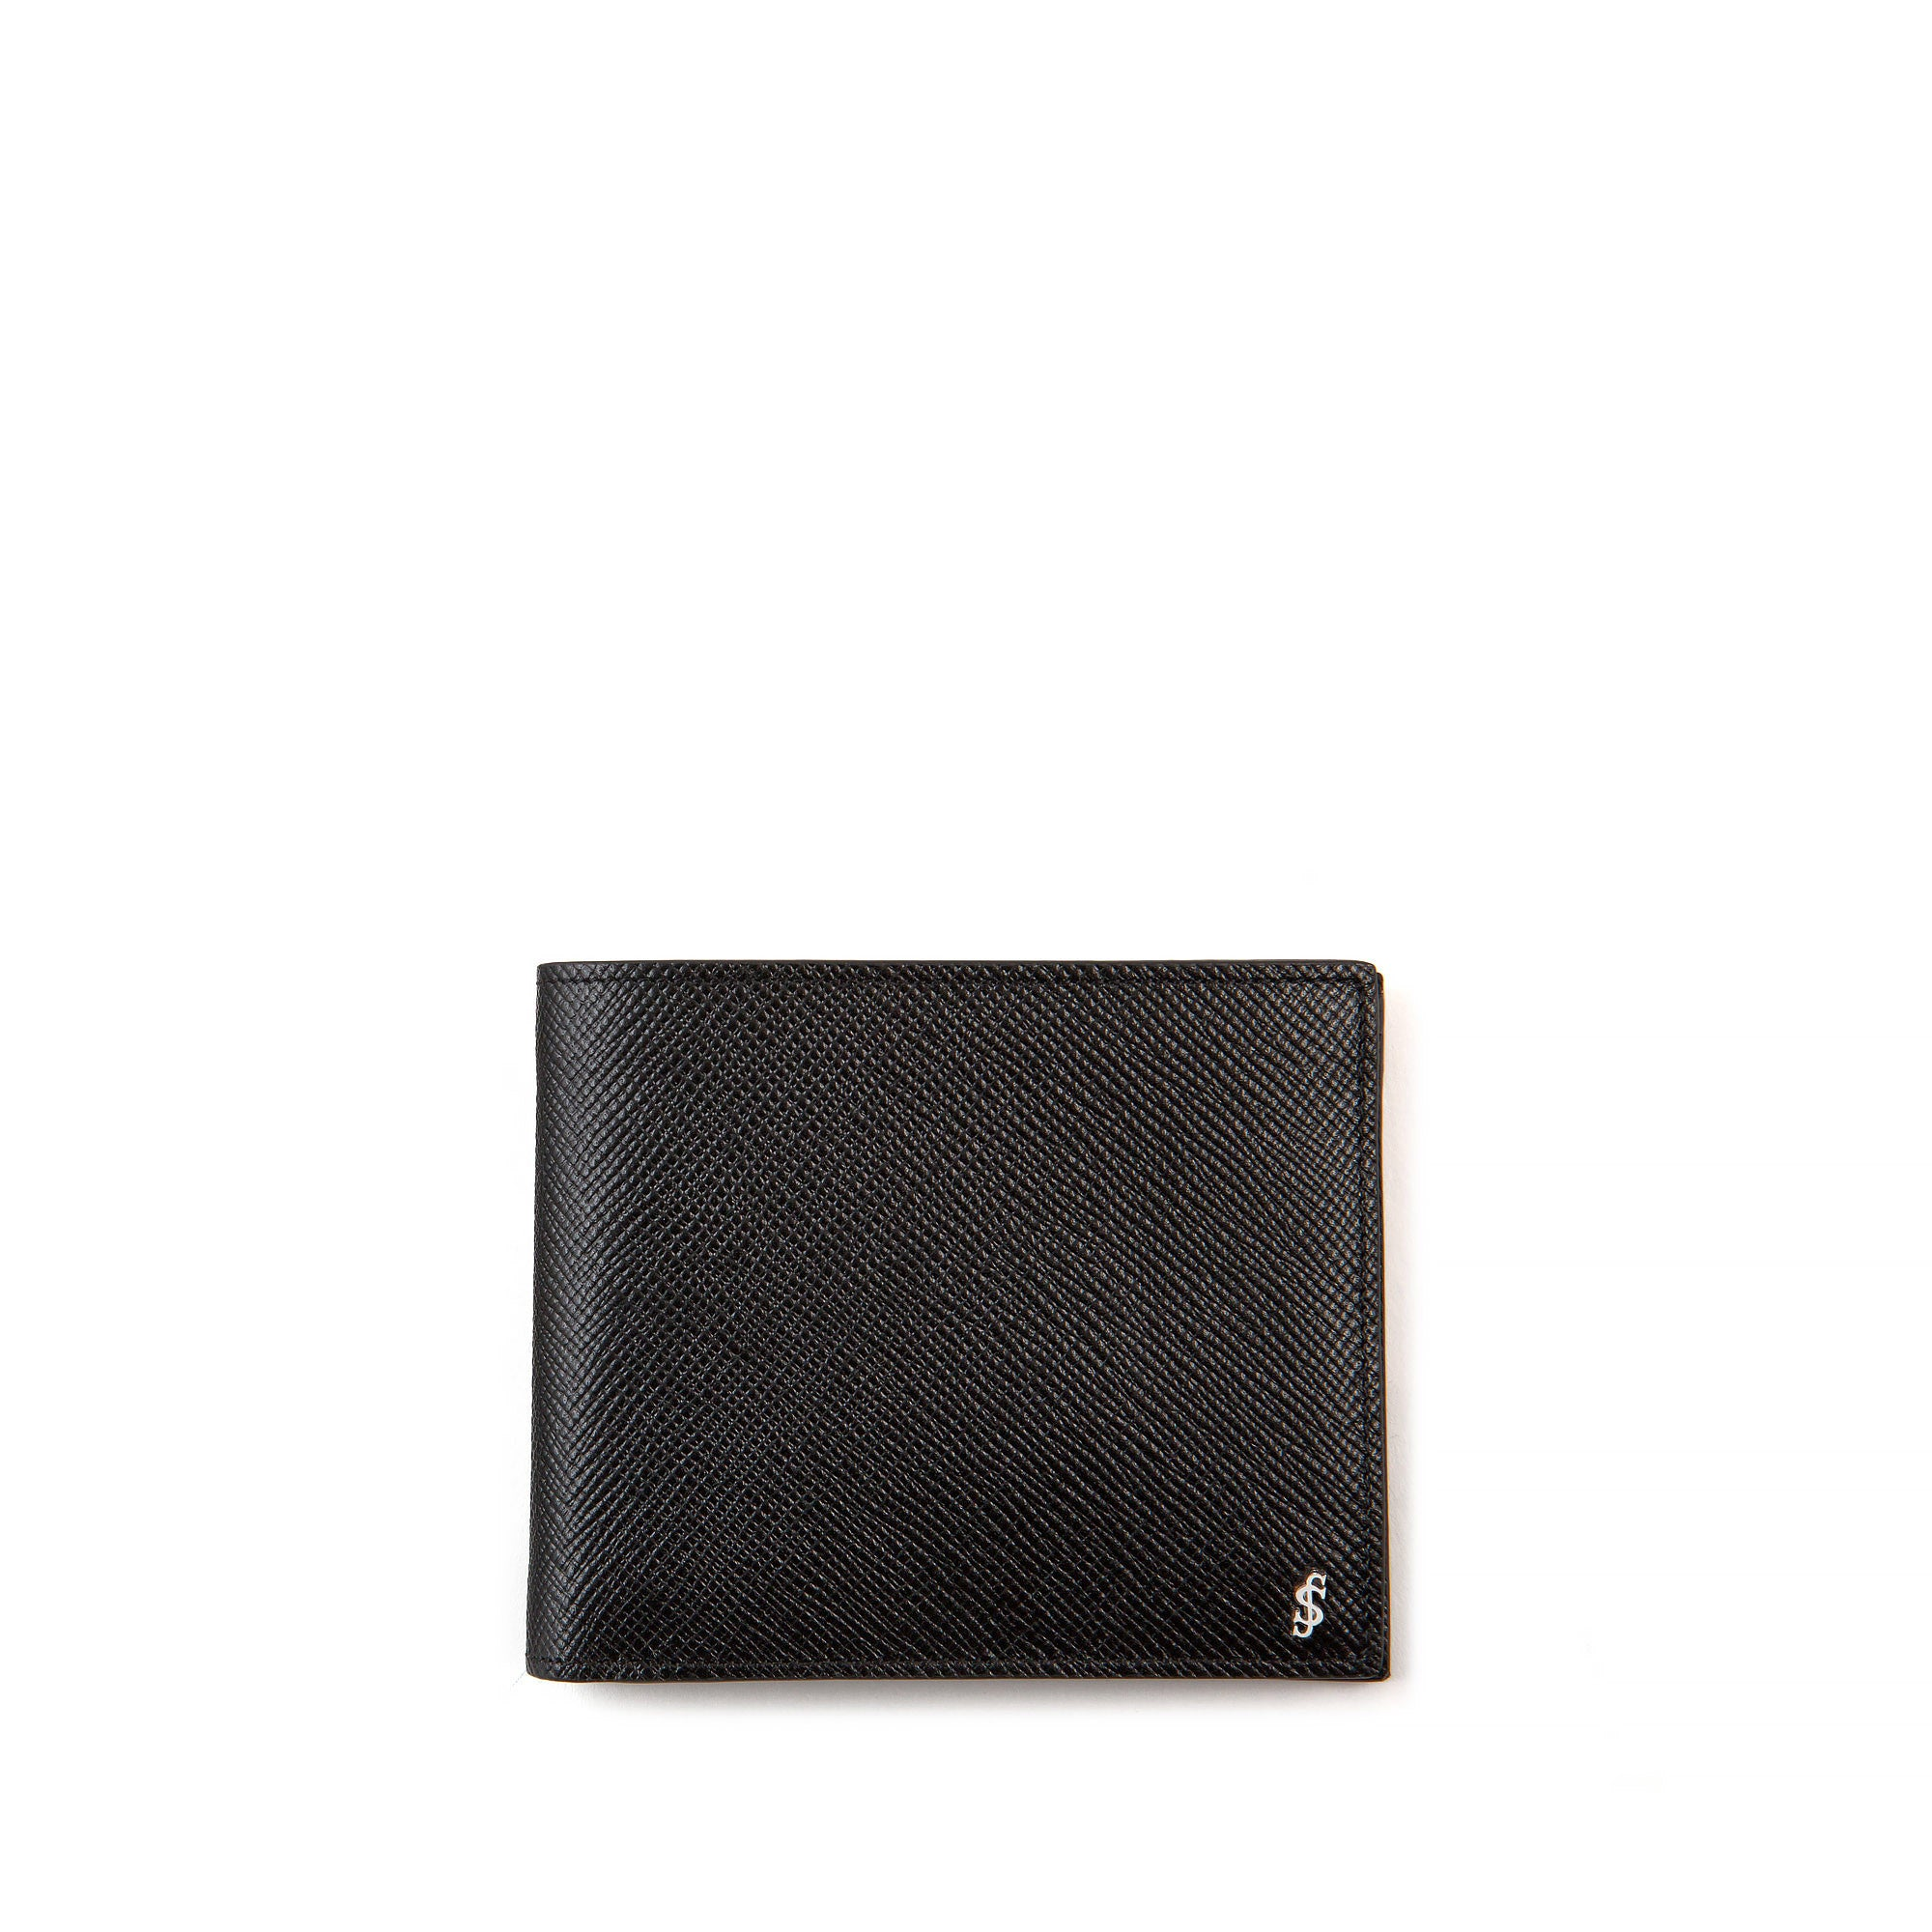 Billfold 8 cc Evolution - Black